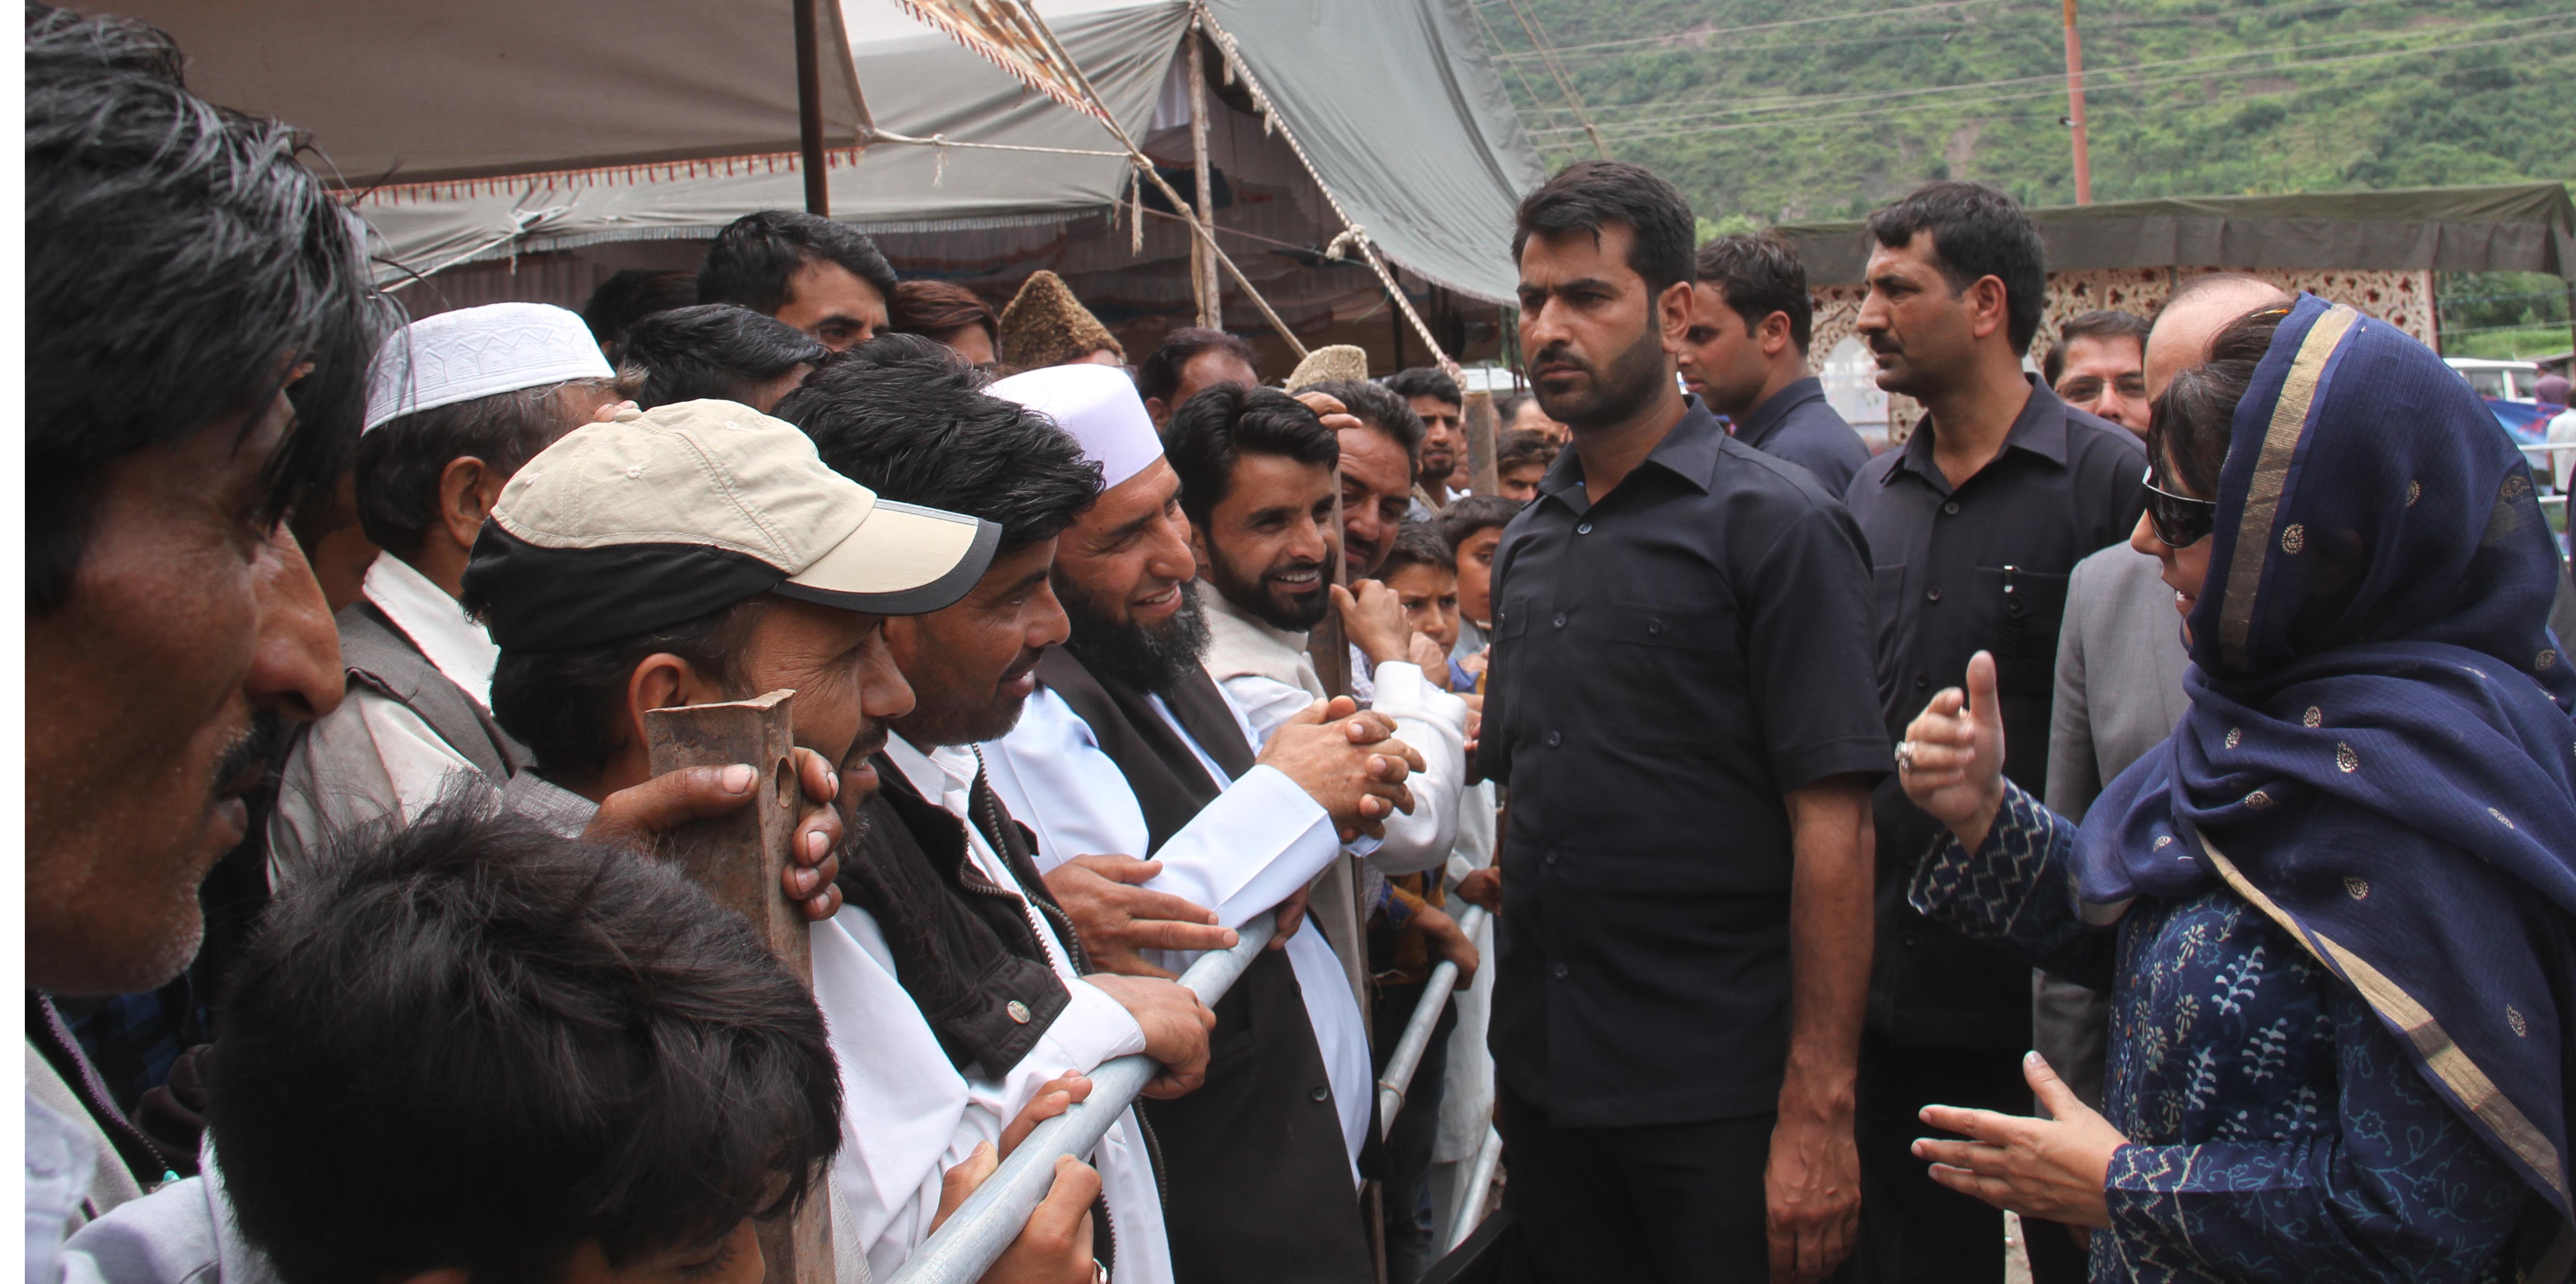 Chief Minister Mehbooba Mufti inter-acting with people at Kaman Post in Uri on Tuesday.